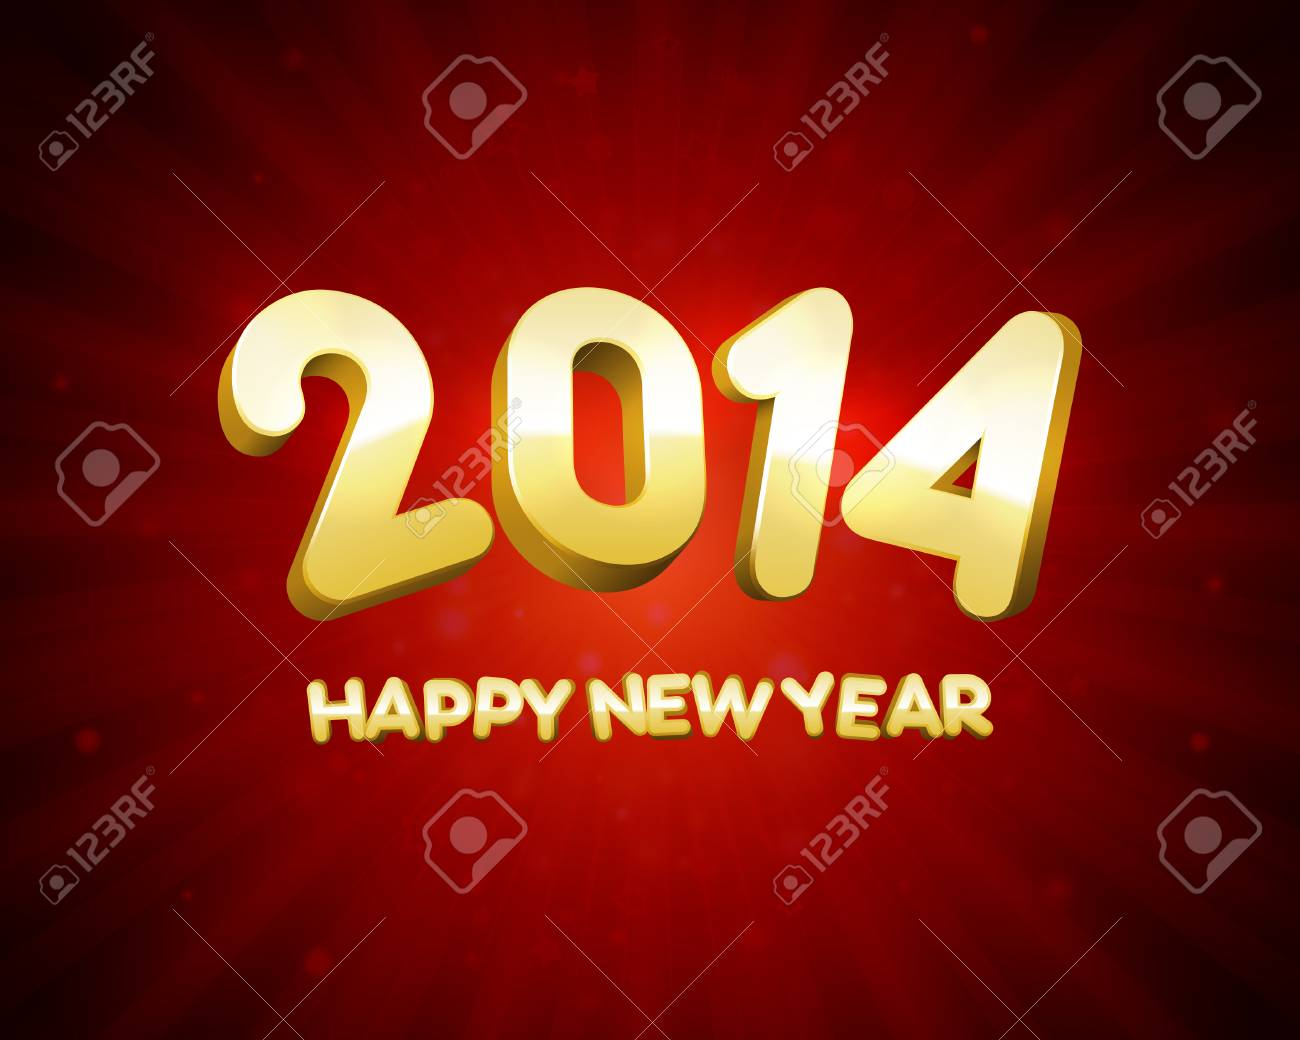 Happy New Year 2014 3d message and light vector background  Eps 10 Stock Vector - 22964598